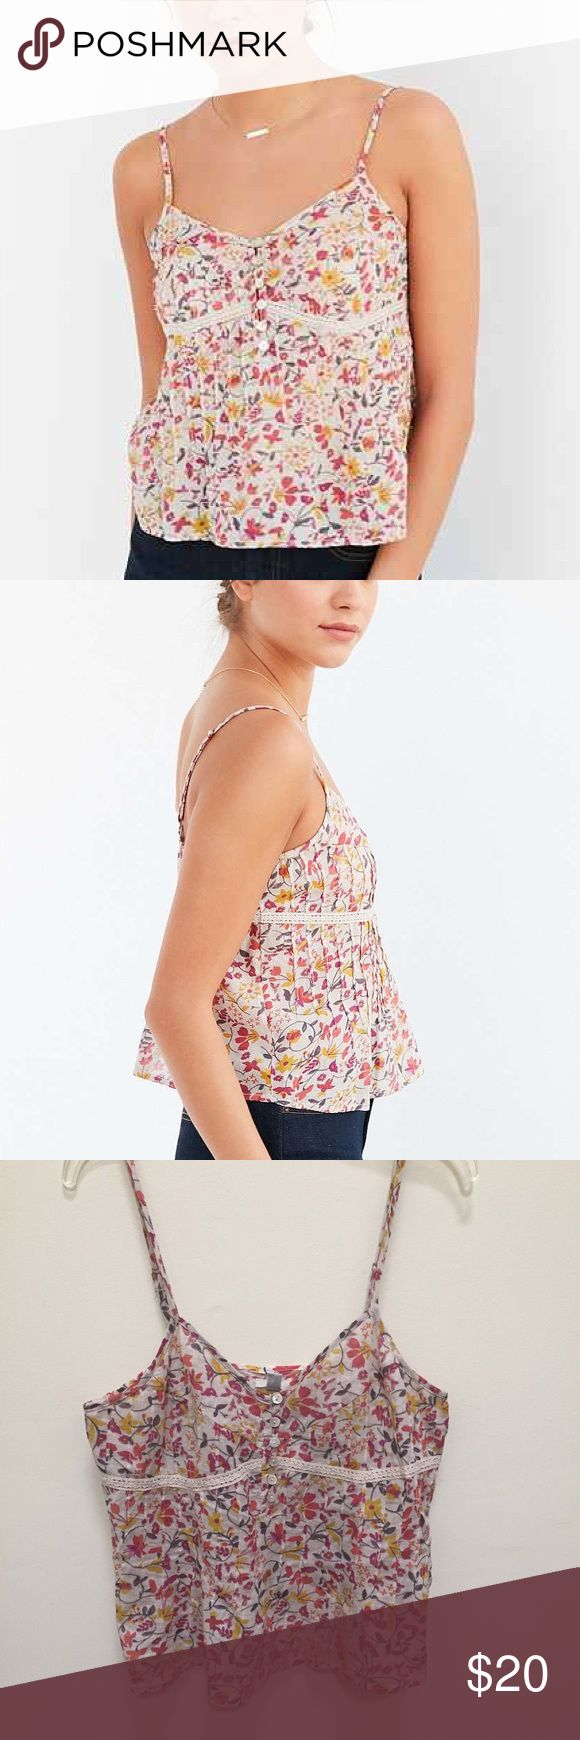 🌴☀️Coachella Top Special 2 UO Tops at $14☀️🌴 🌻Hipster Floral Jenni Cami by Urban Outfitters brand Ecote!🌻 Material: 100% Cotton! Makes a great gift for your boho flower girl🌺🌸💐🌻 Urban Outfitters Tops Camisoles